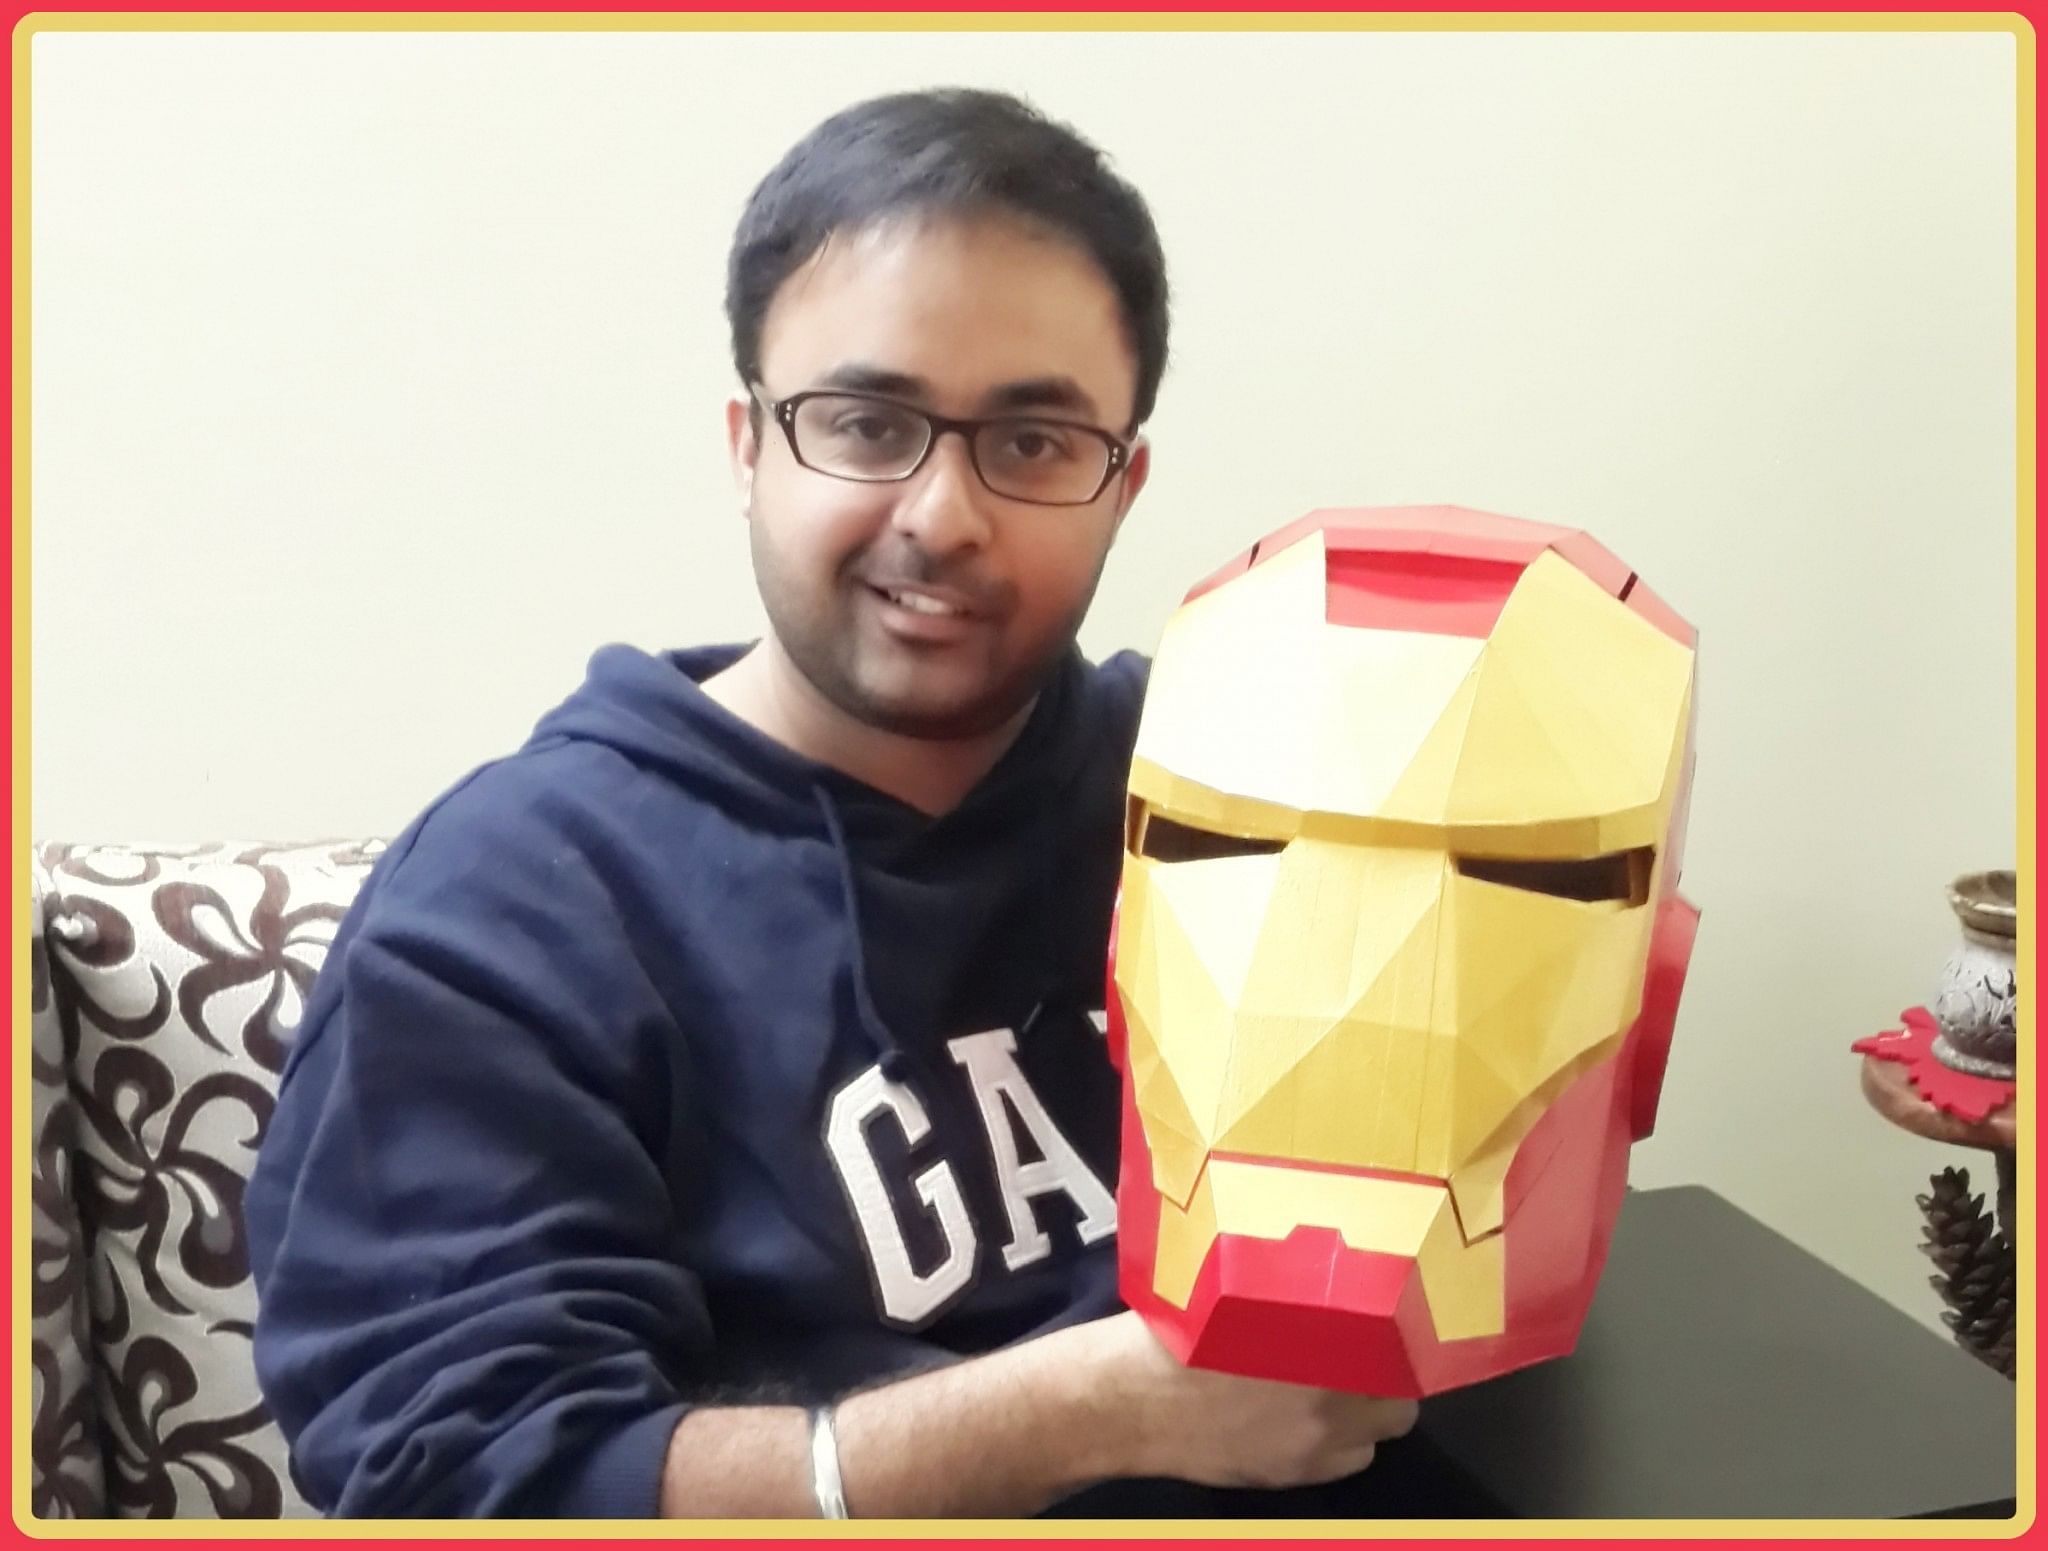 Atamjeet Singh with the Iron Man helmet.